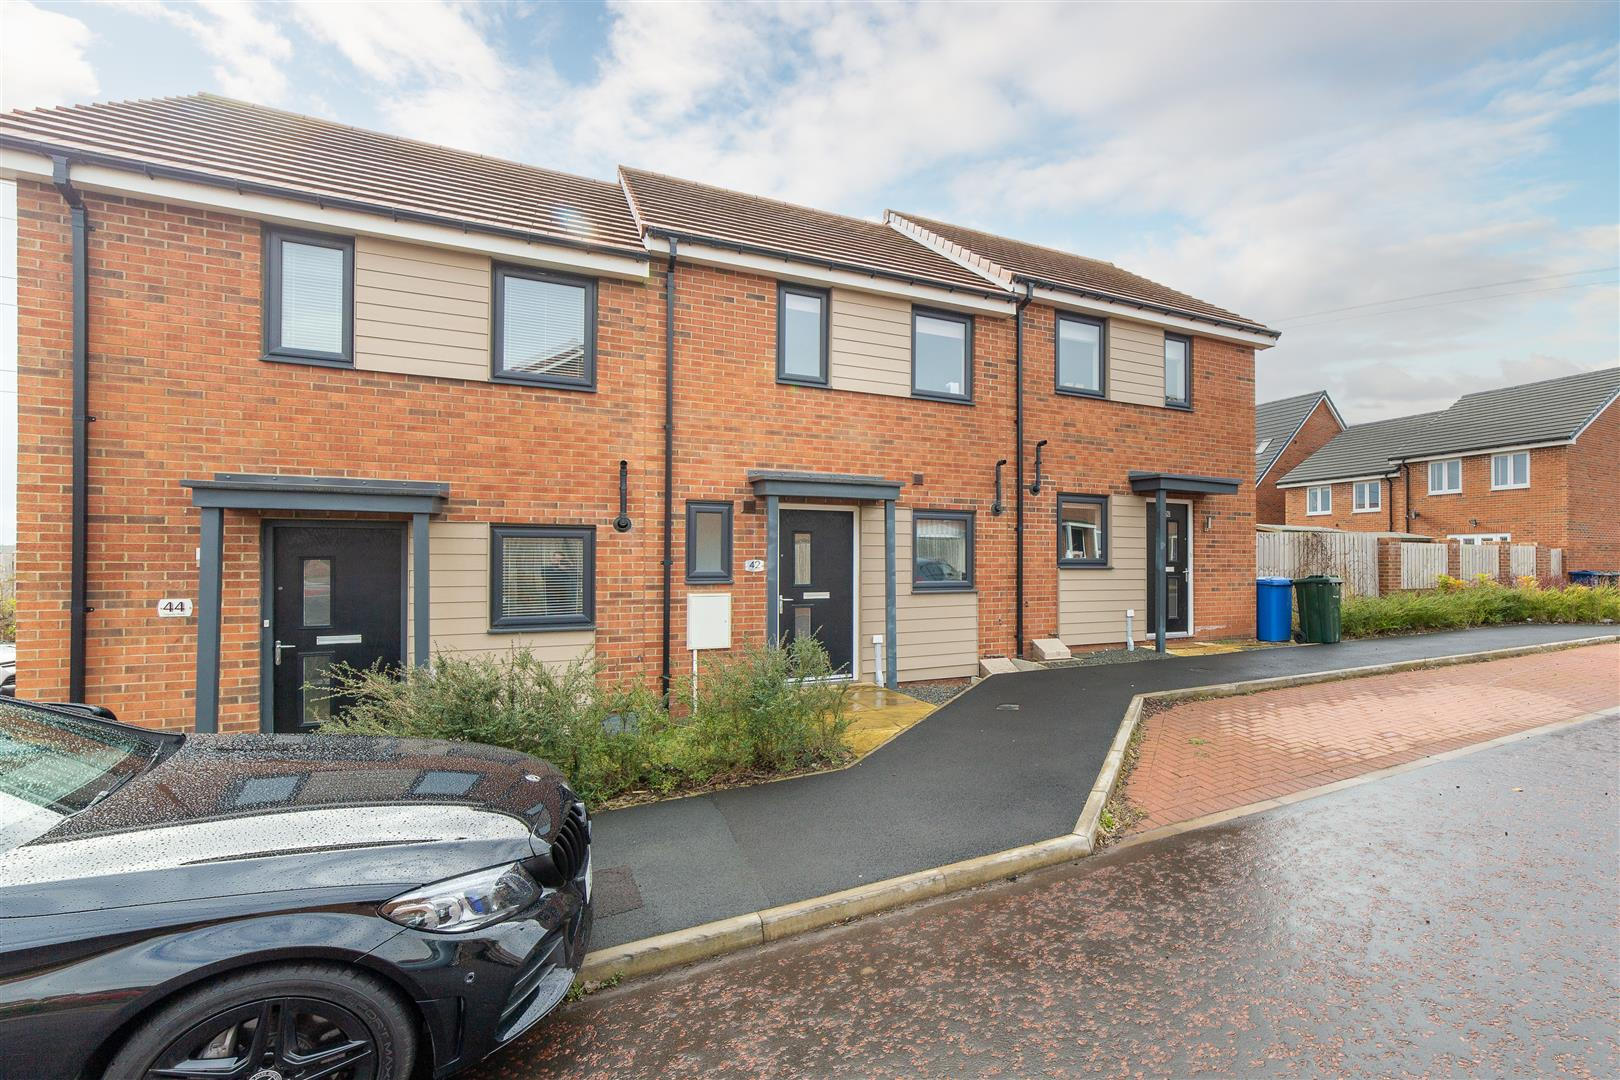 2 bed terraced house to rent in Osprey Walk, Great Park, NE13